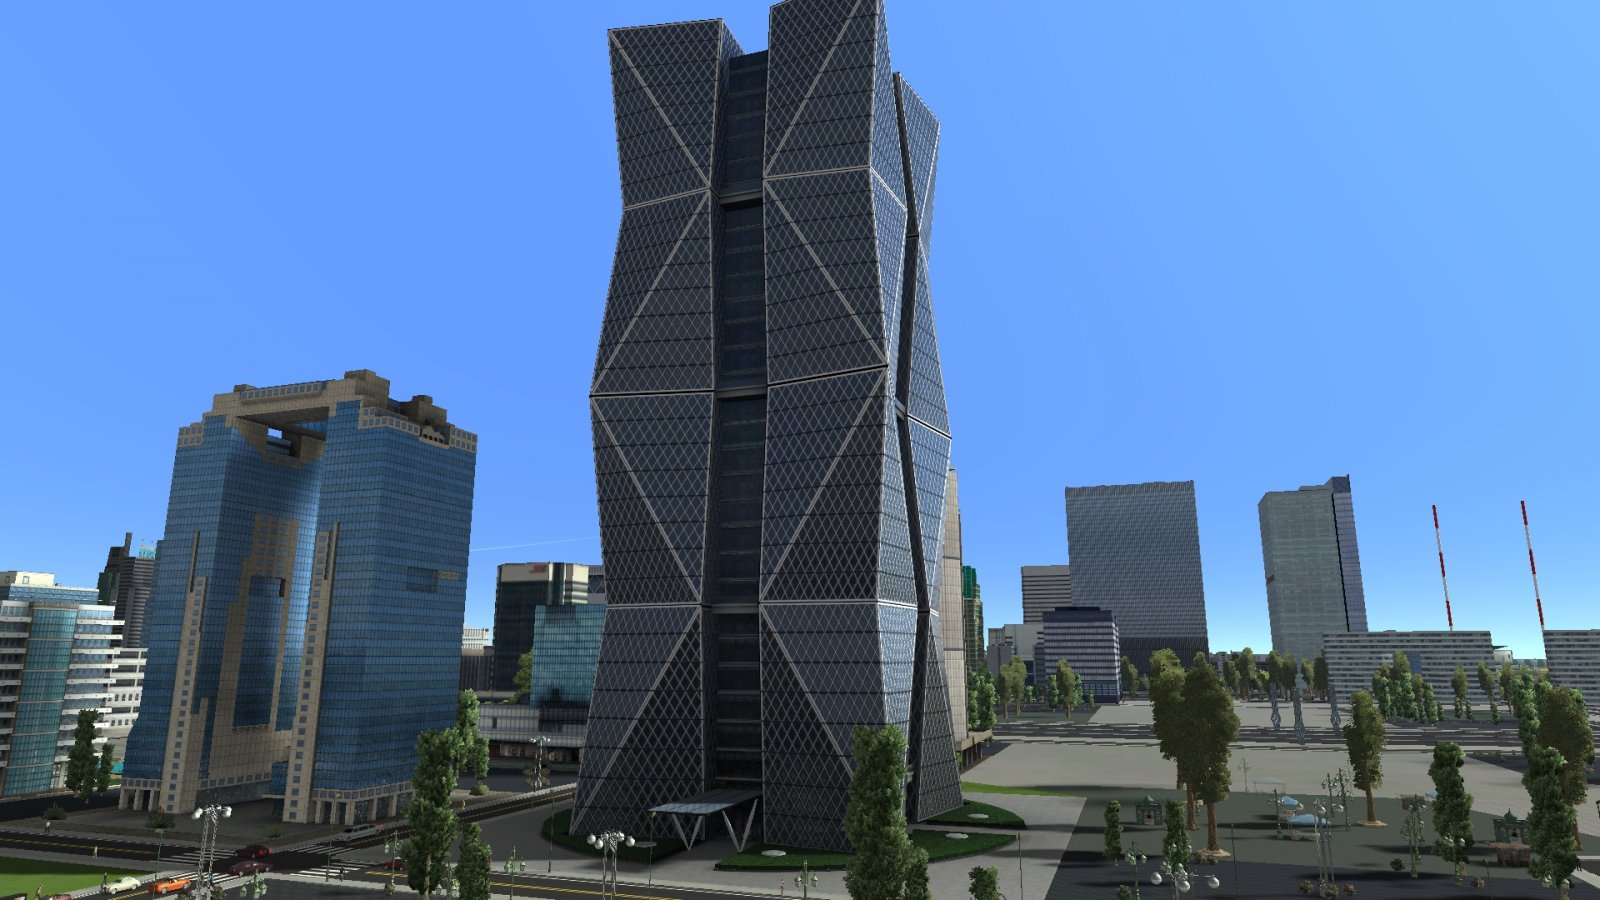 cxl_screenshot_la defense_32.jpg